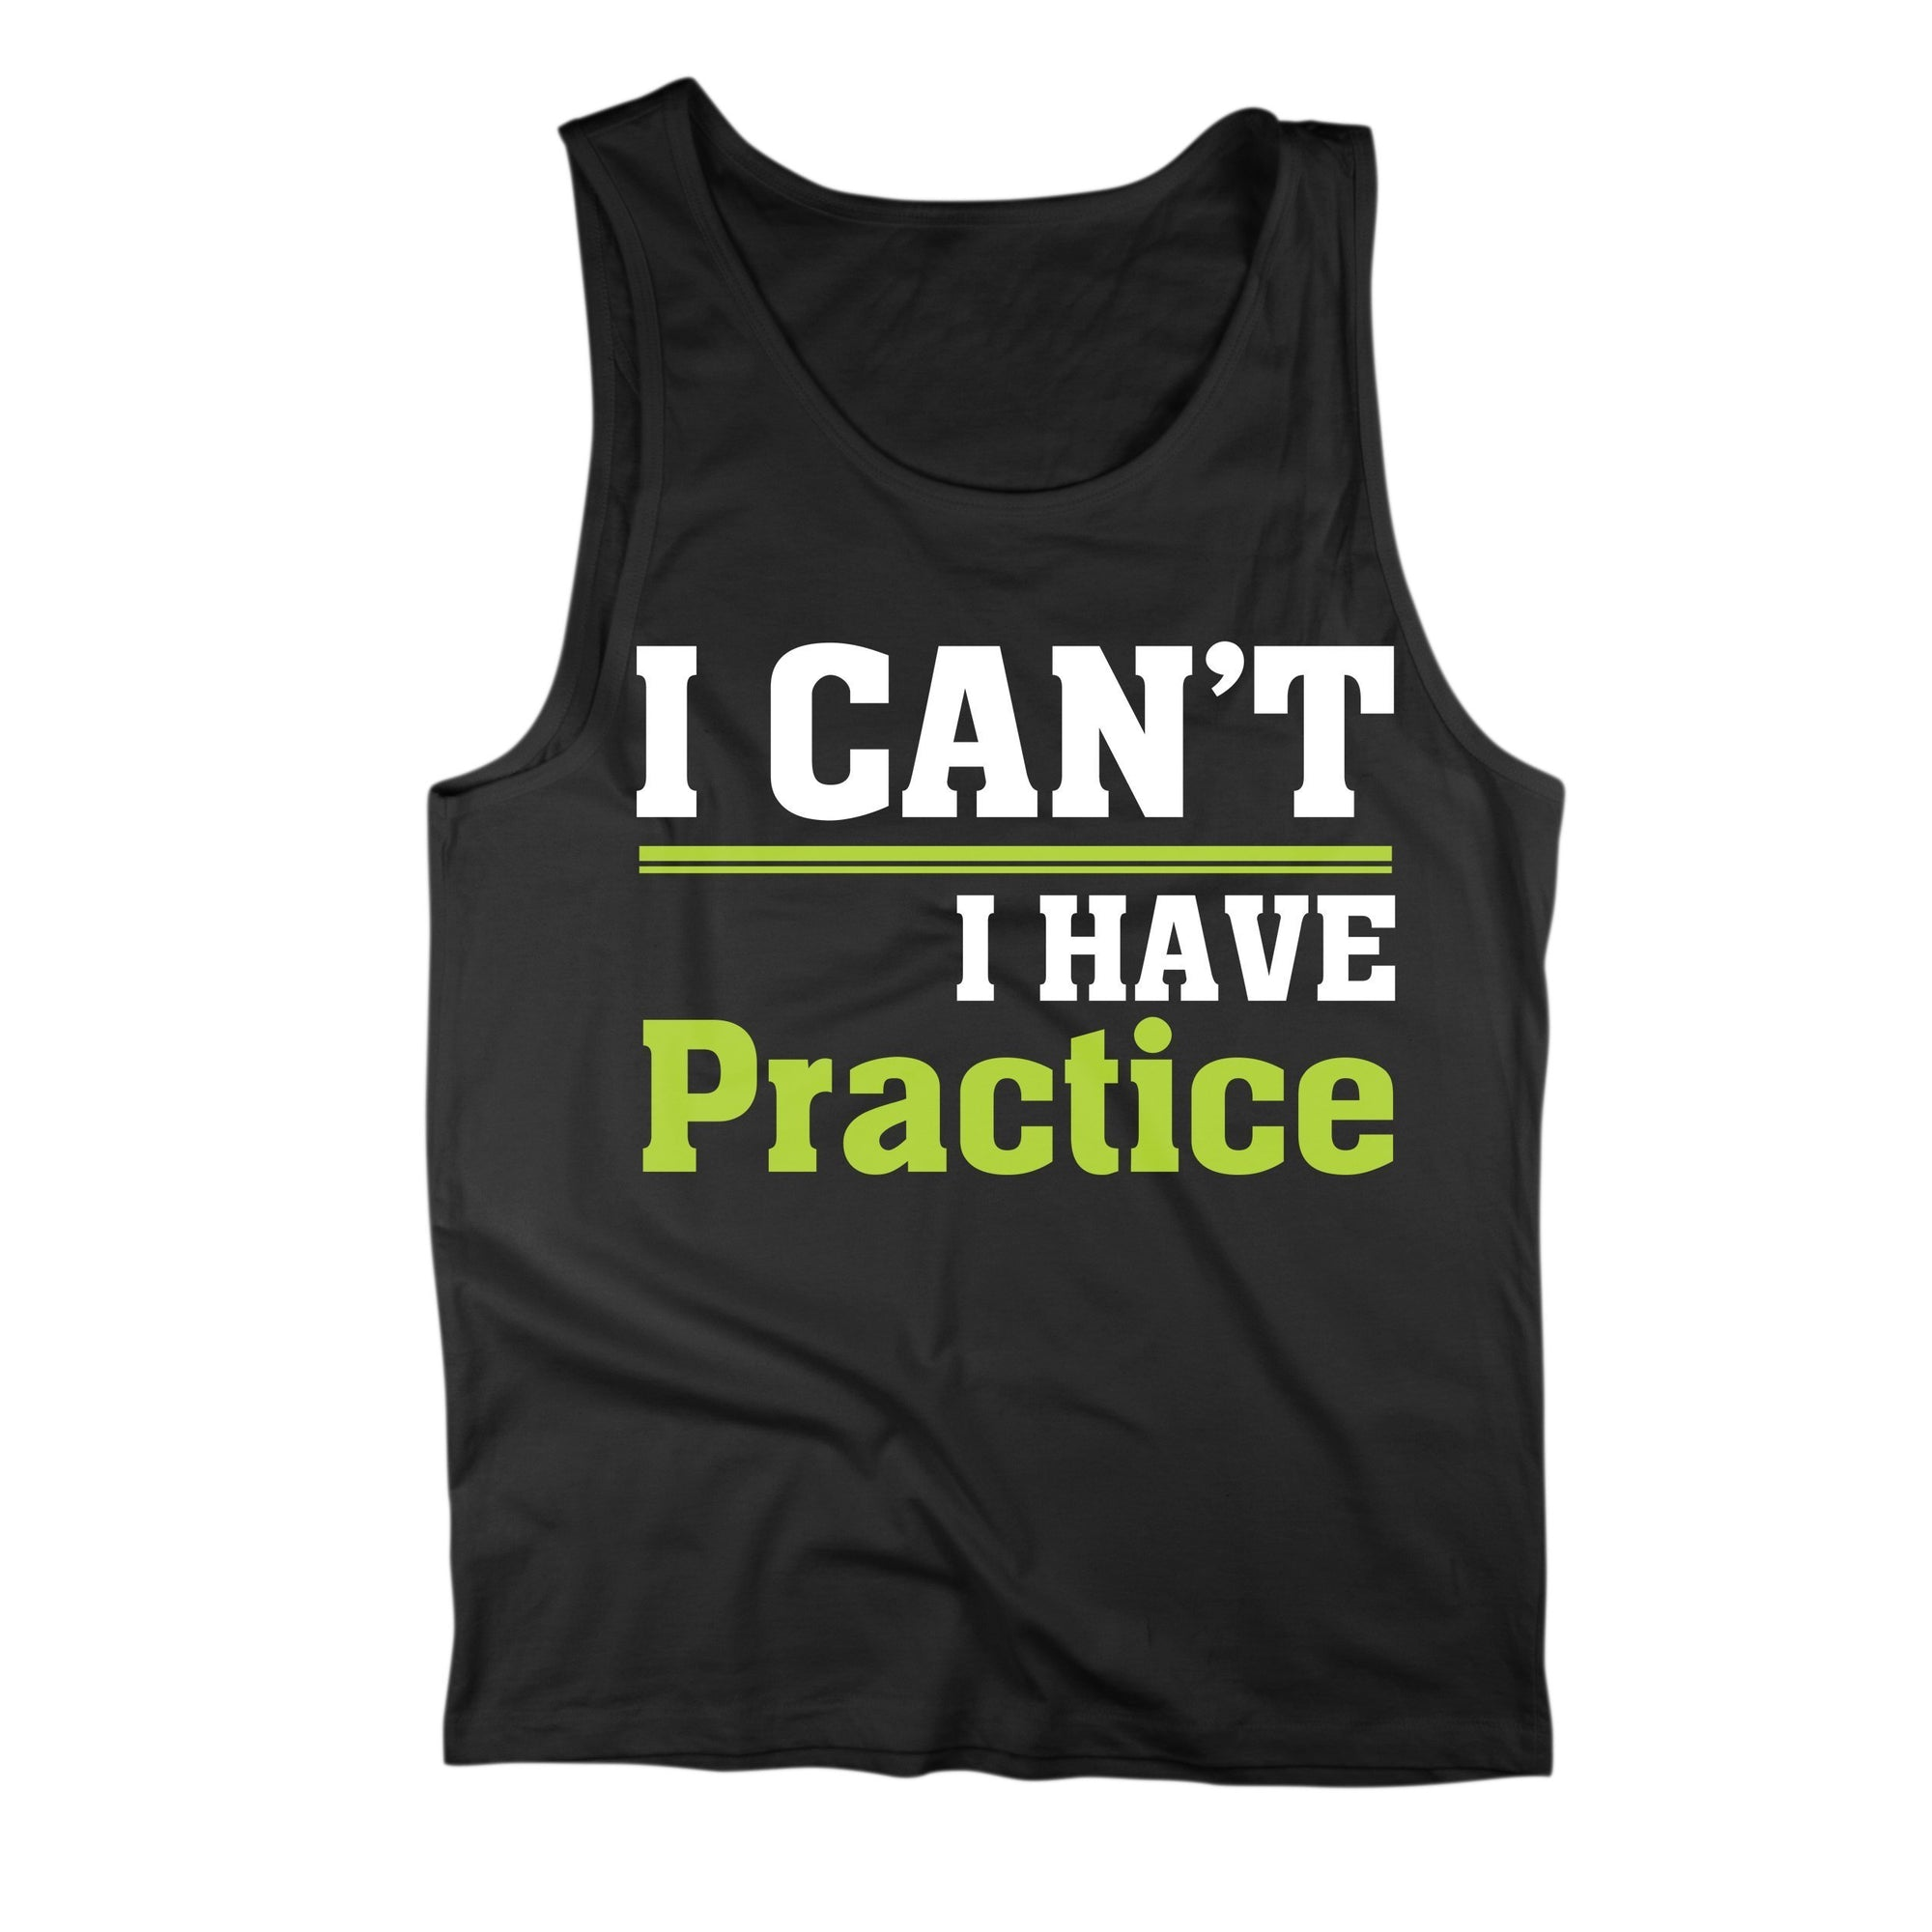 I Can't. I Have Practice. Tank Top